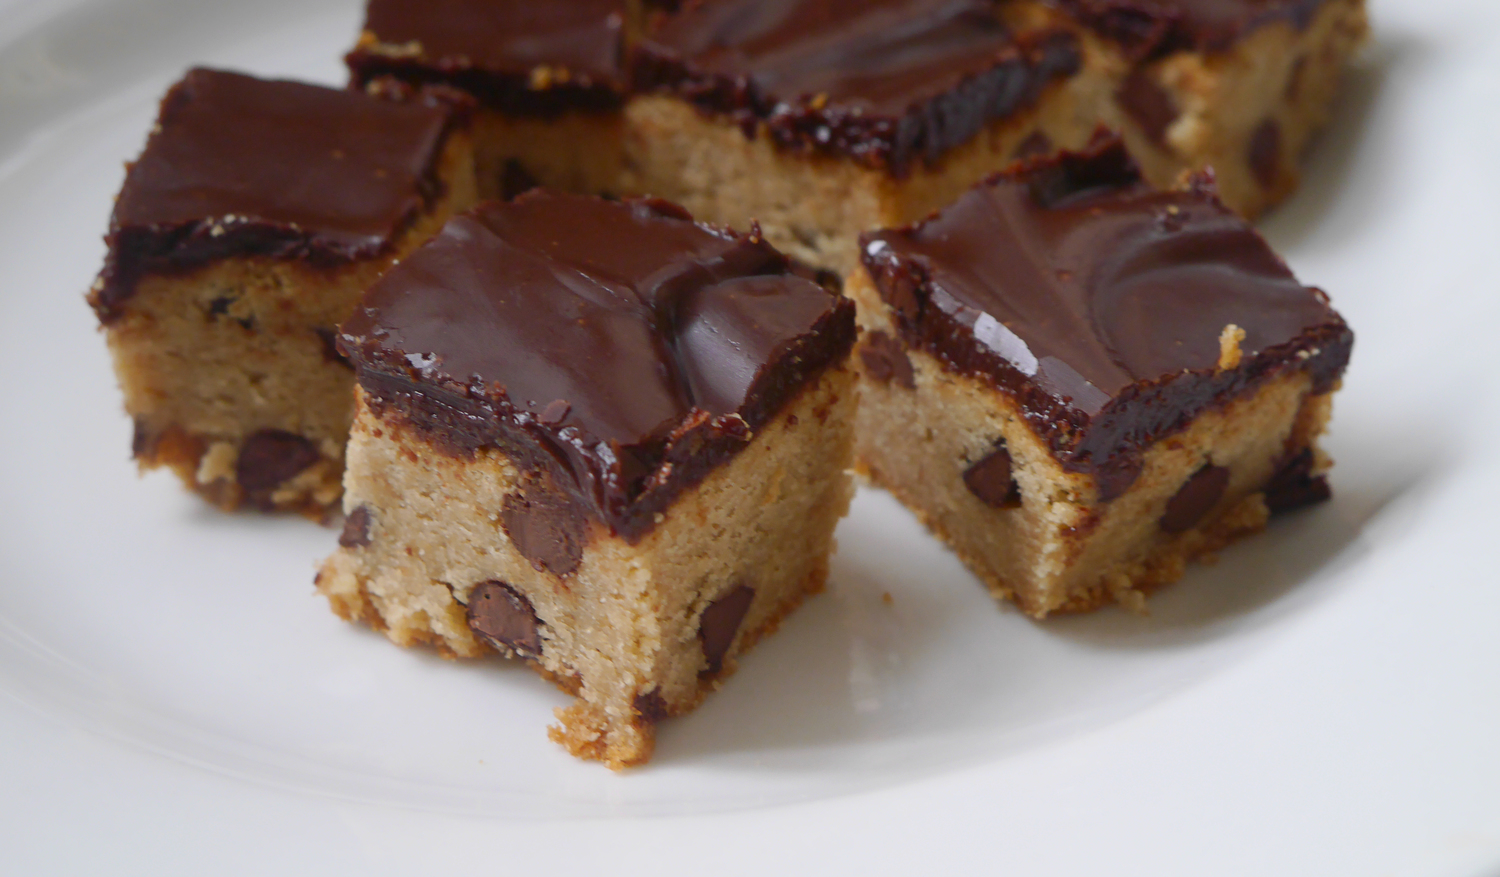 SK's Peanut Butter Brownies